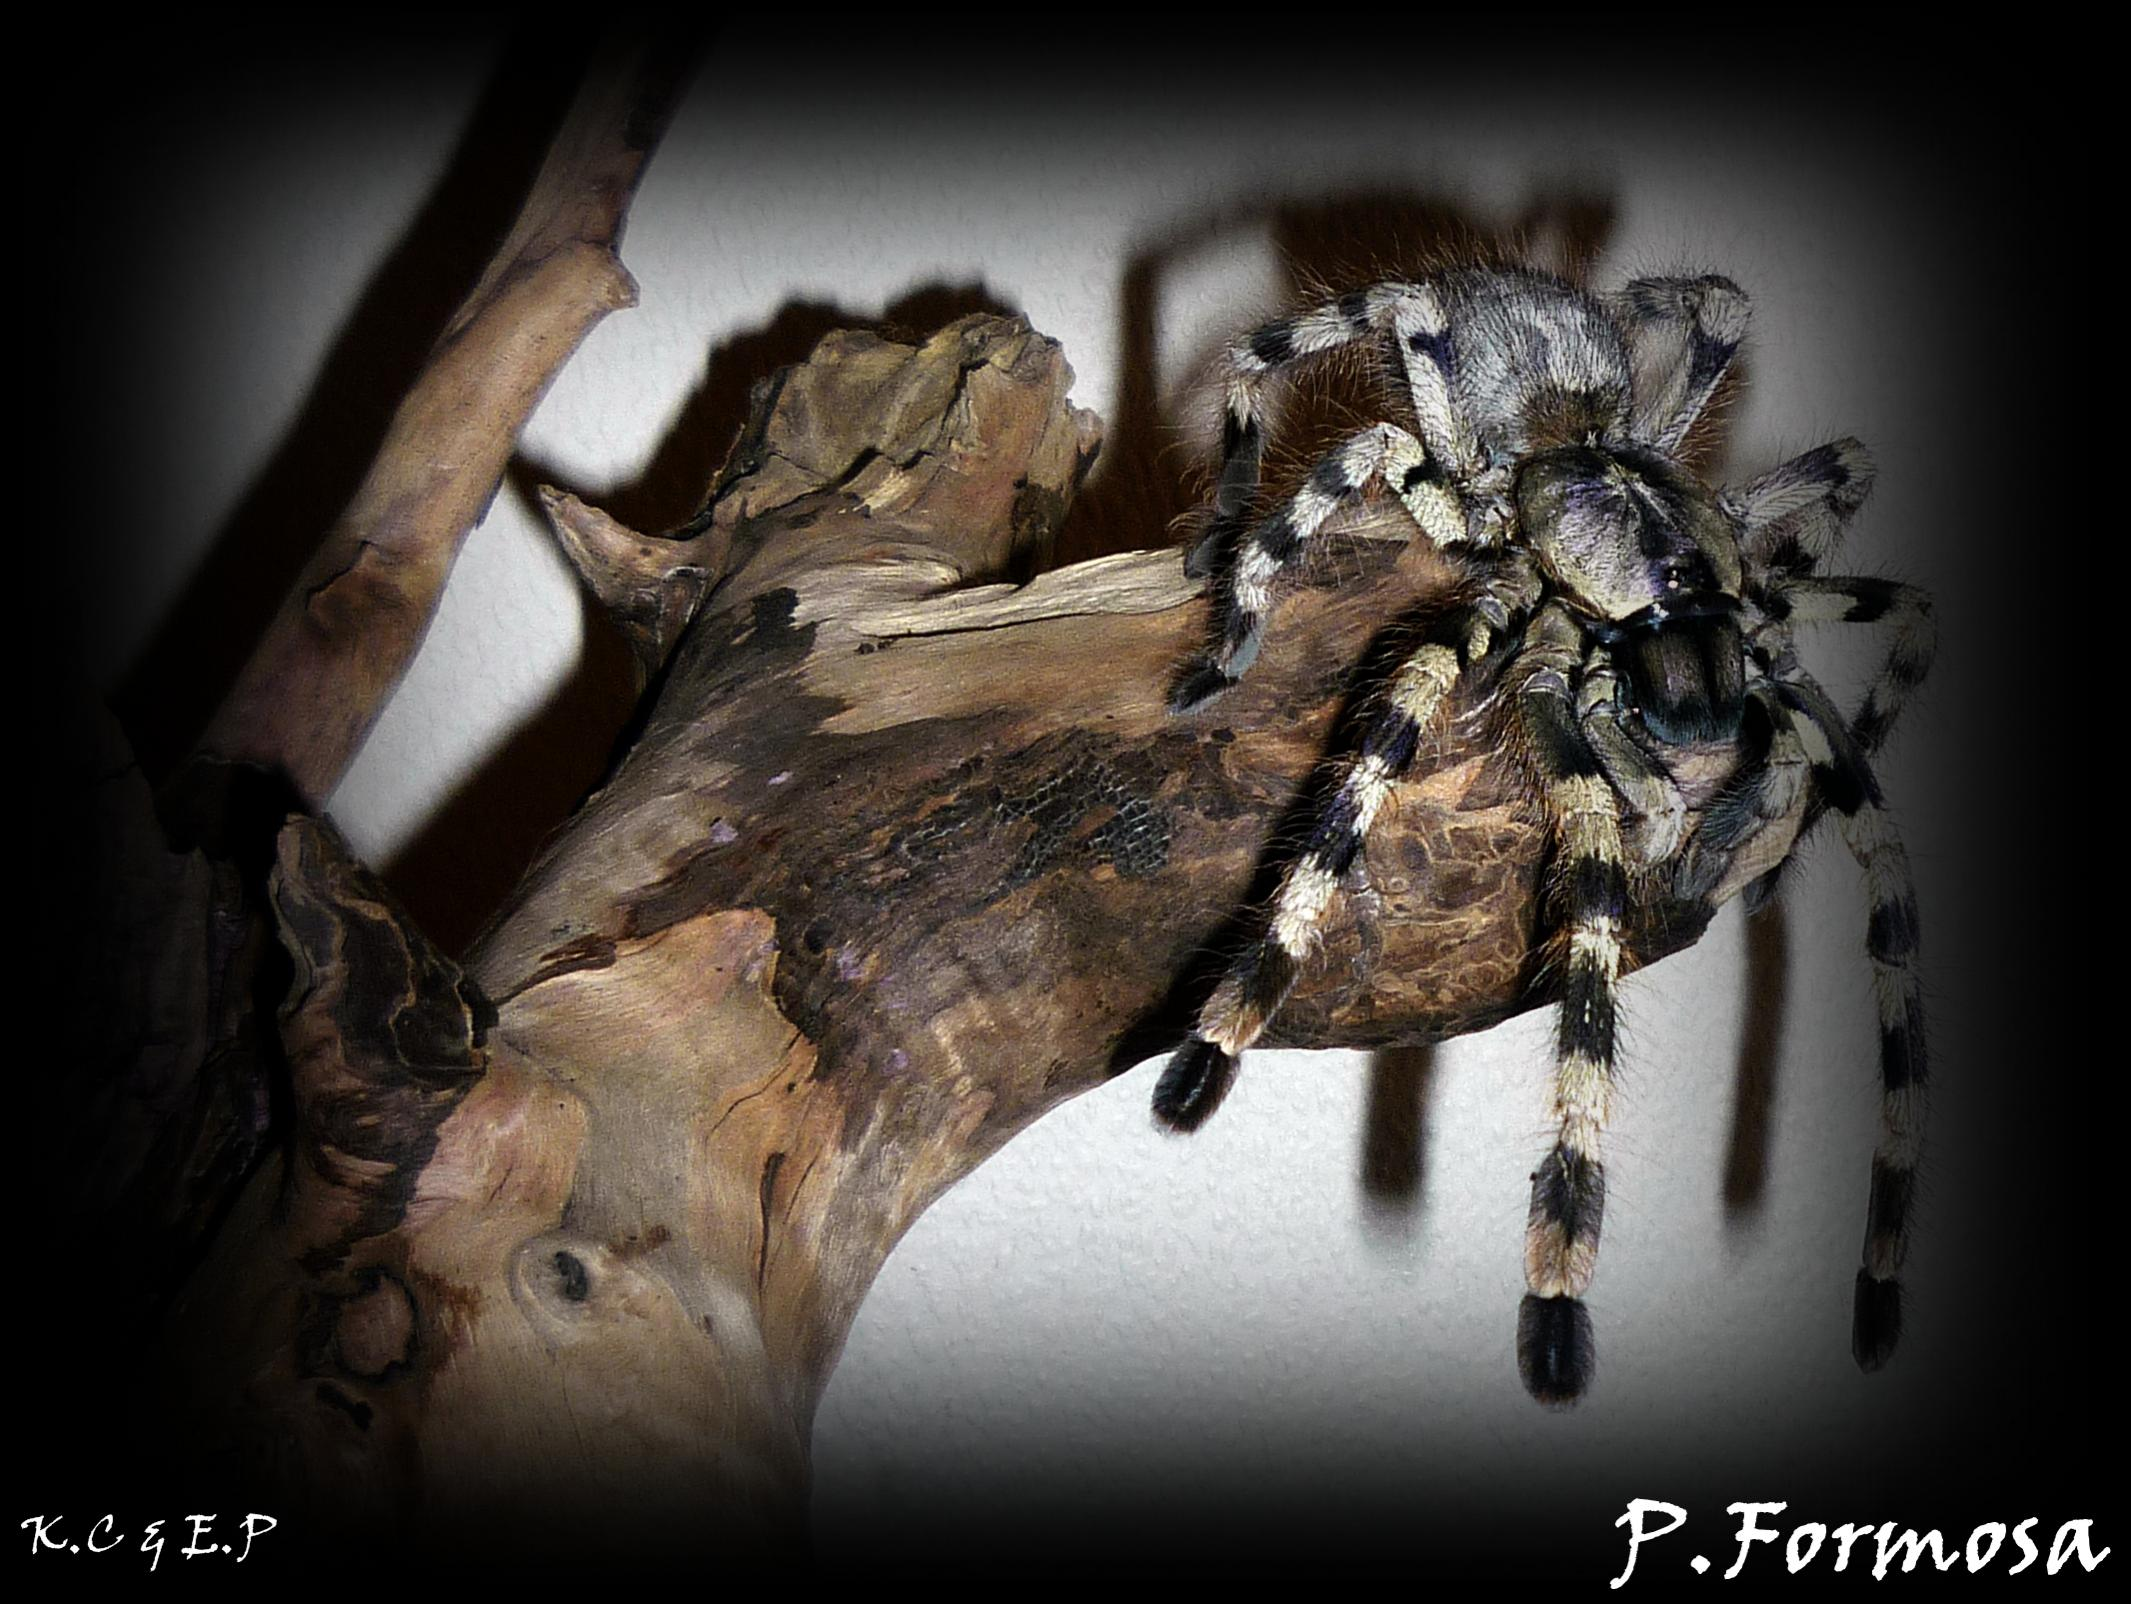 W Midlands Lots of poecilotheria species for sale - Reptile Forums